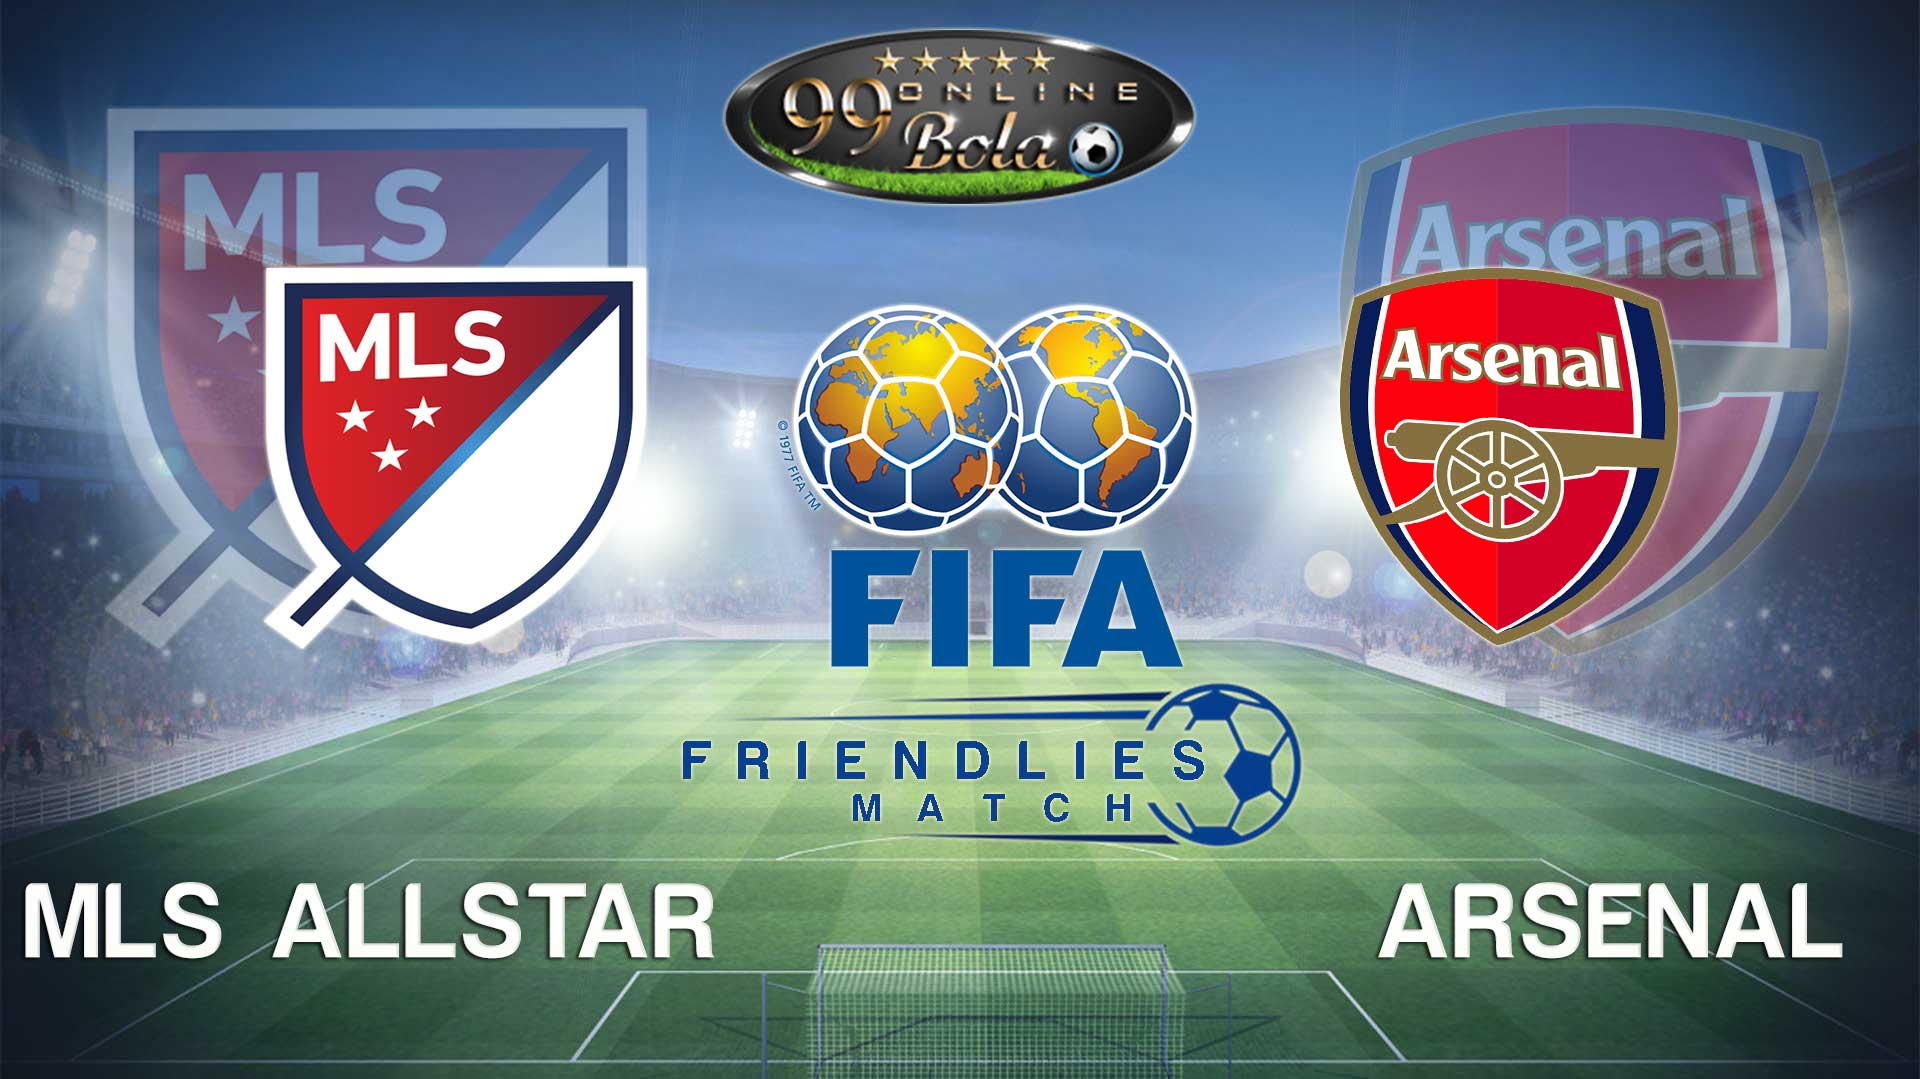 MLS-Allstar-Vs-Arsenal